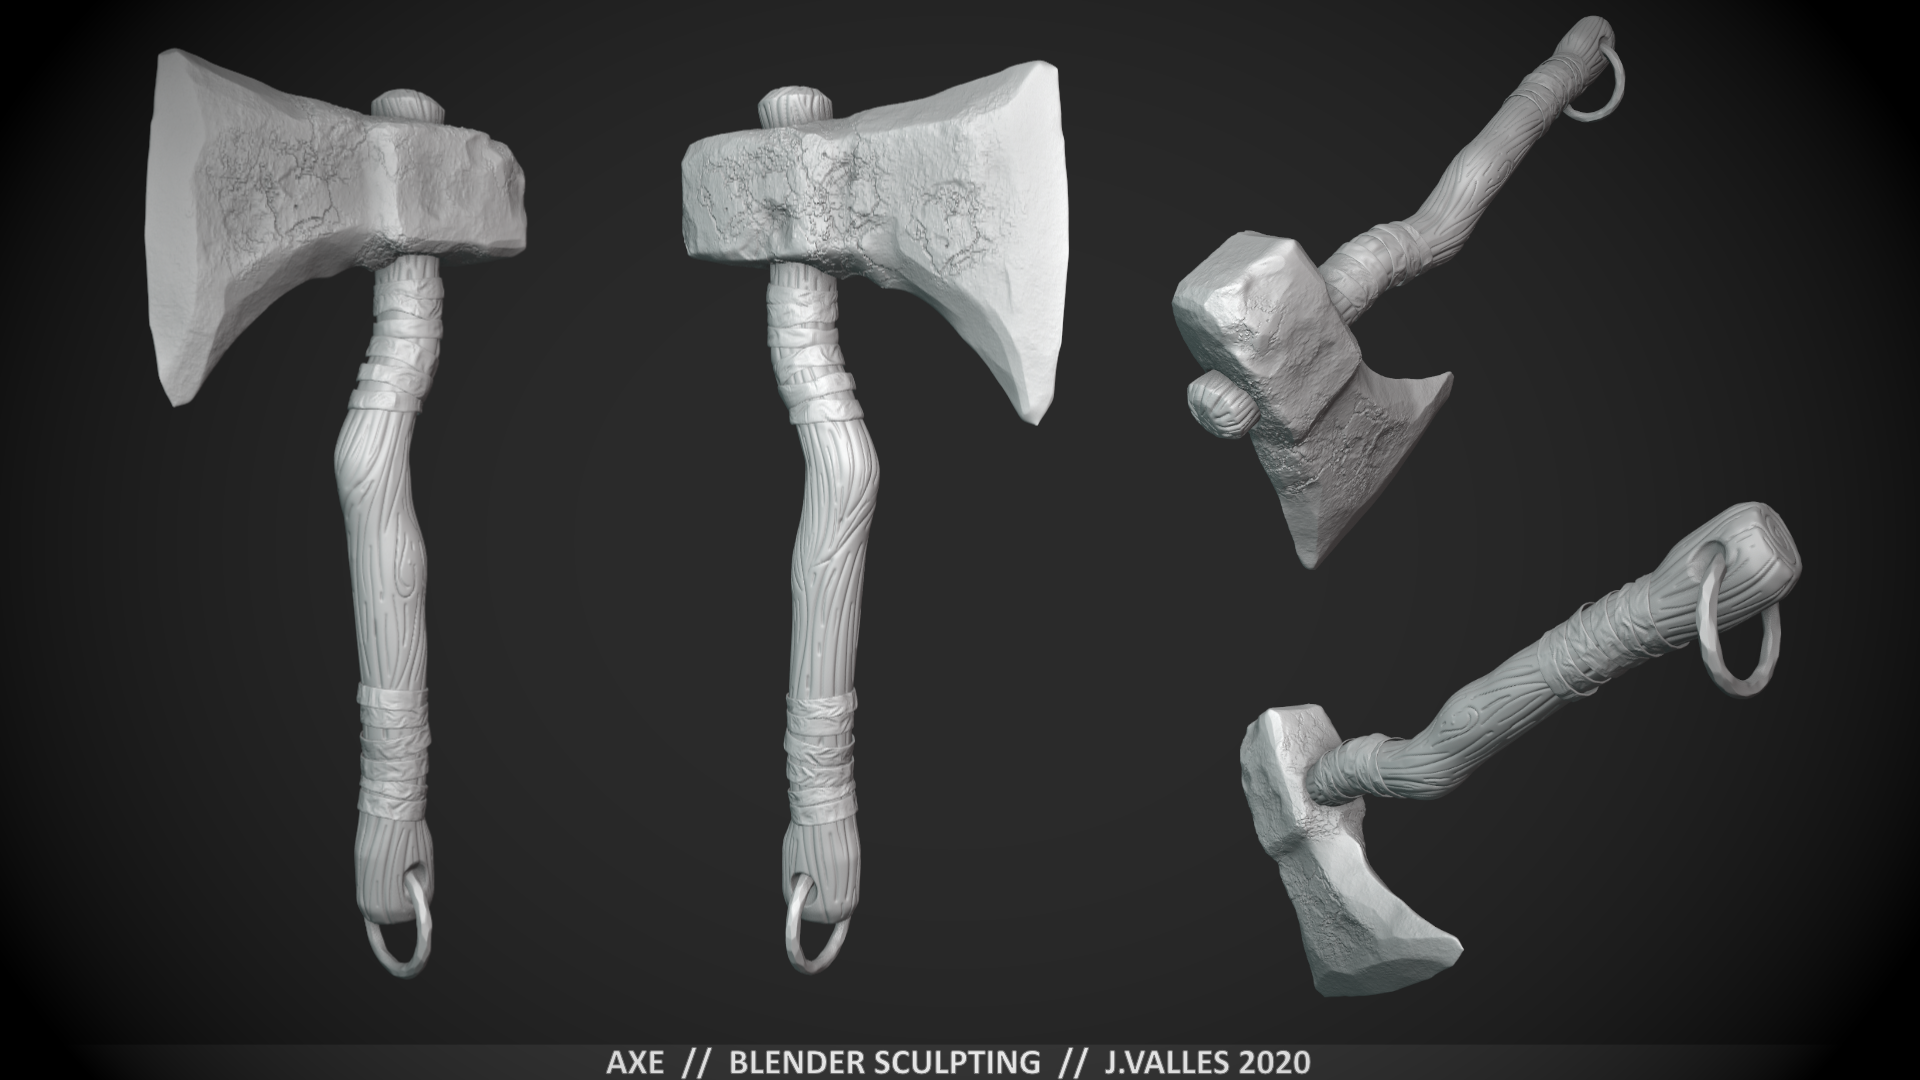 Axe - Blender Sculpting